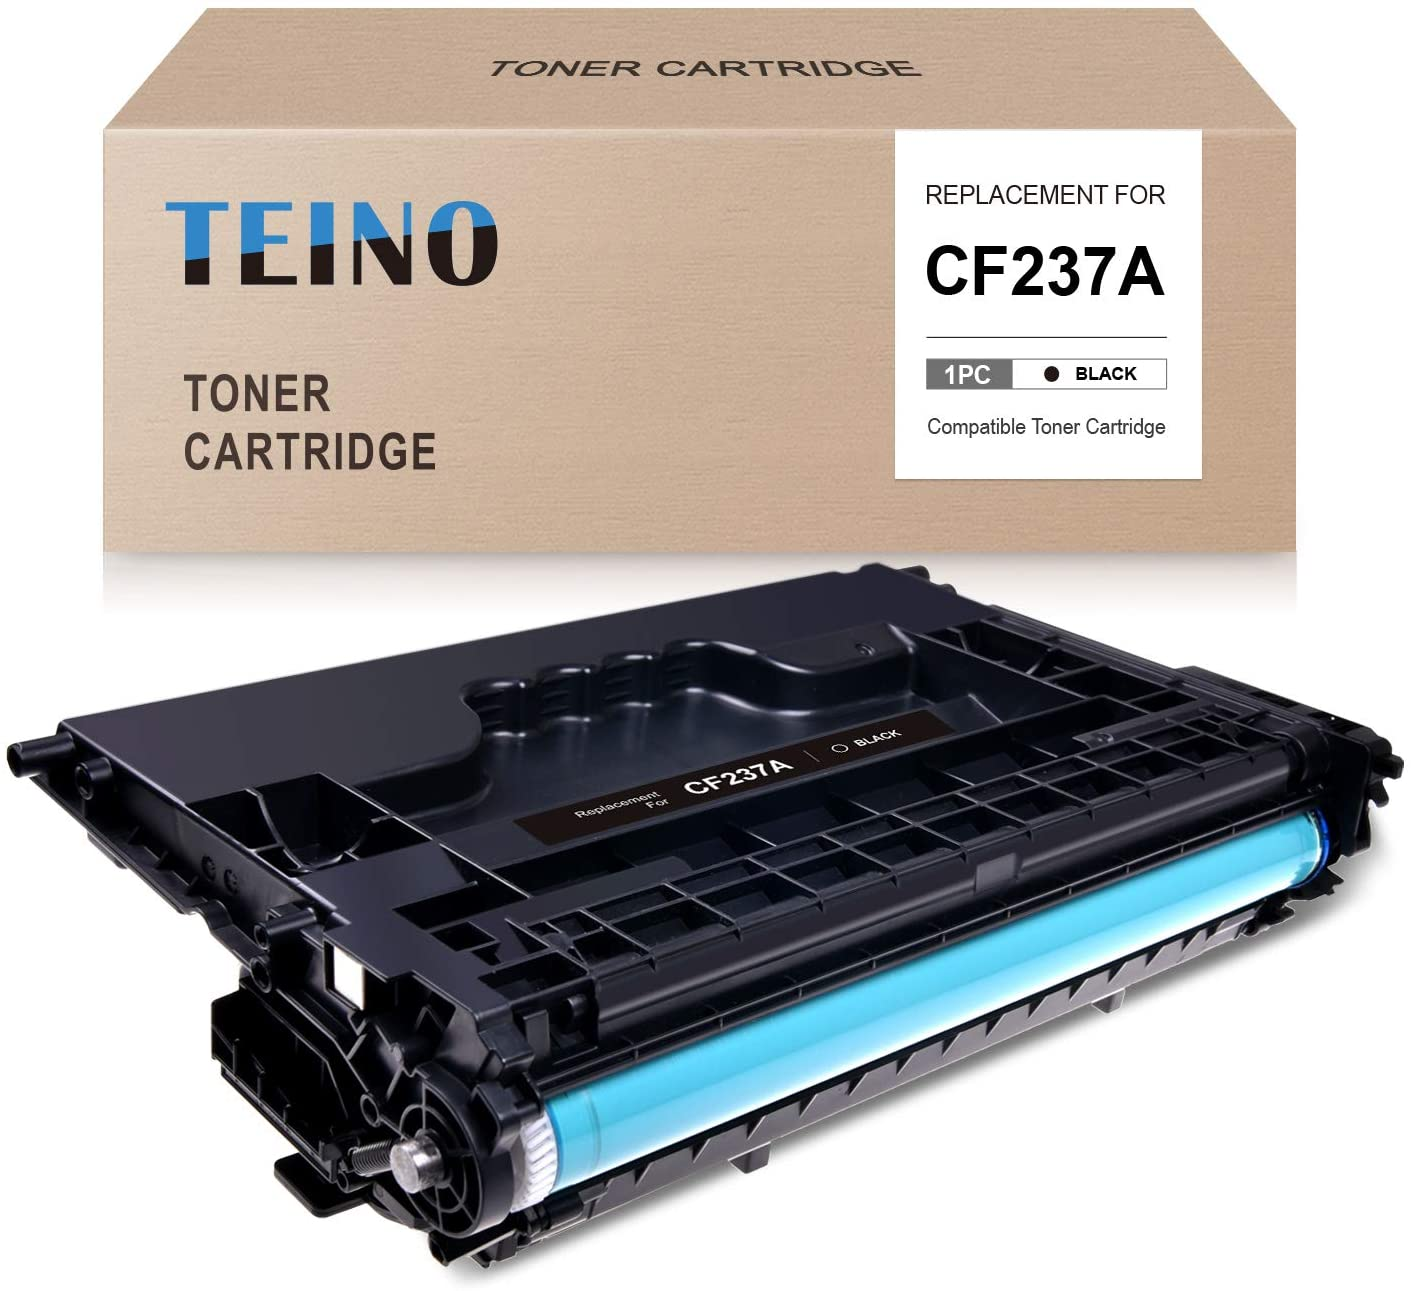 TEINO Compatible Toner Cartridge Replacement for HP 37A CF237A use with HP Laserjet Enterprise M607n MFP M632 M608dn M609dn M607dn M608n M608x MFP M631 MFP M633 (Black, 1-Pack)